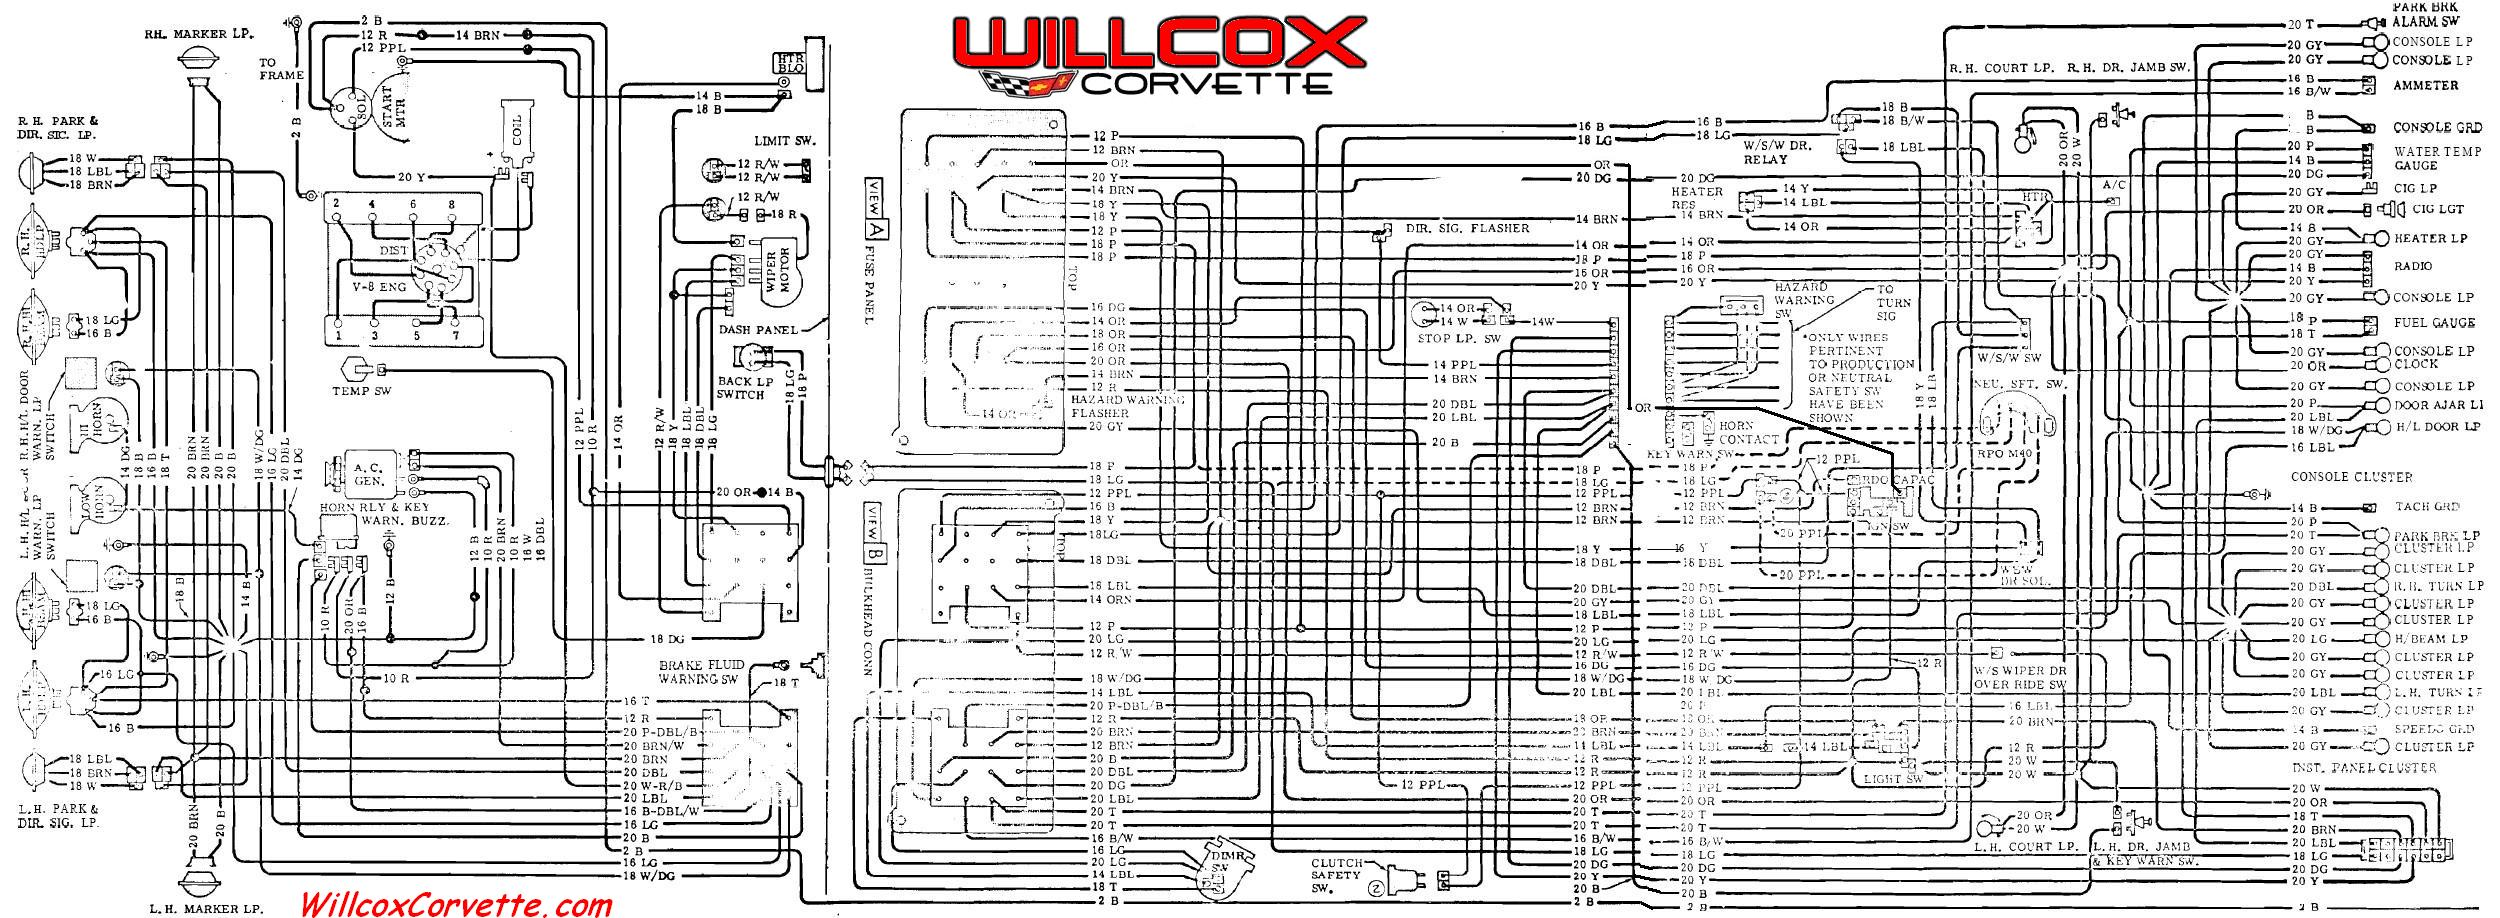 1997 Corvette Wiring Diagram Another Blog About 1969 Exterior Main And Engine Compartment